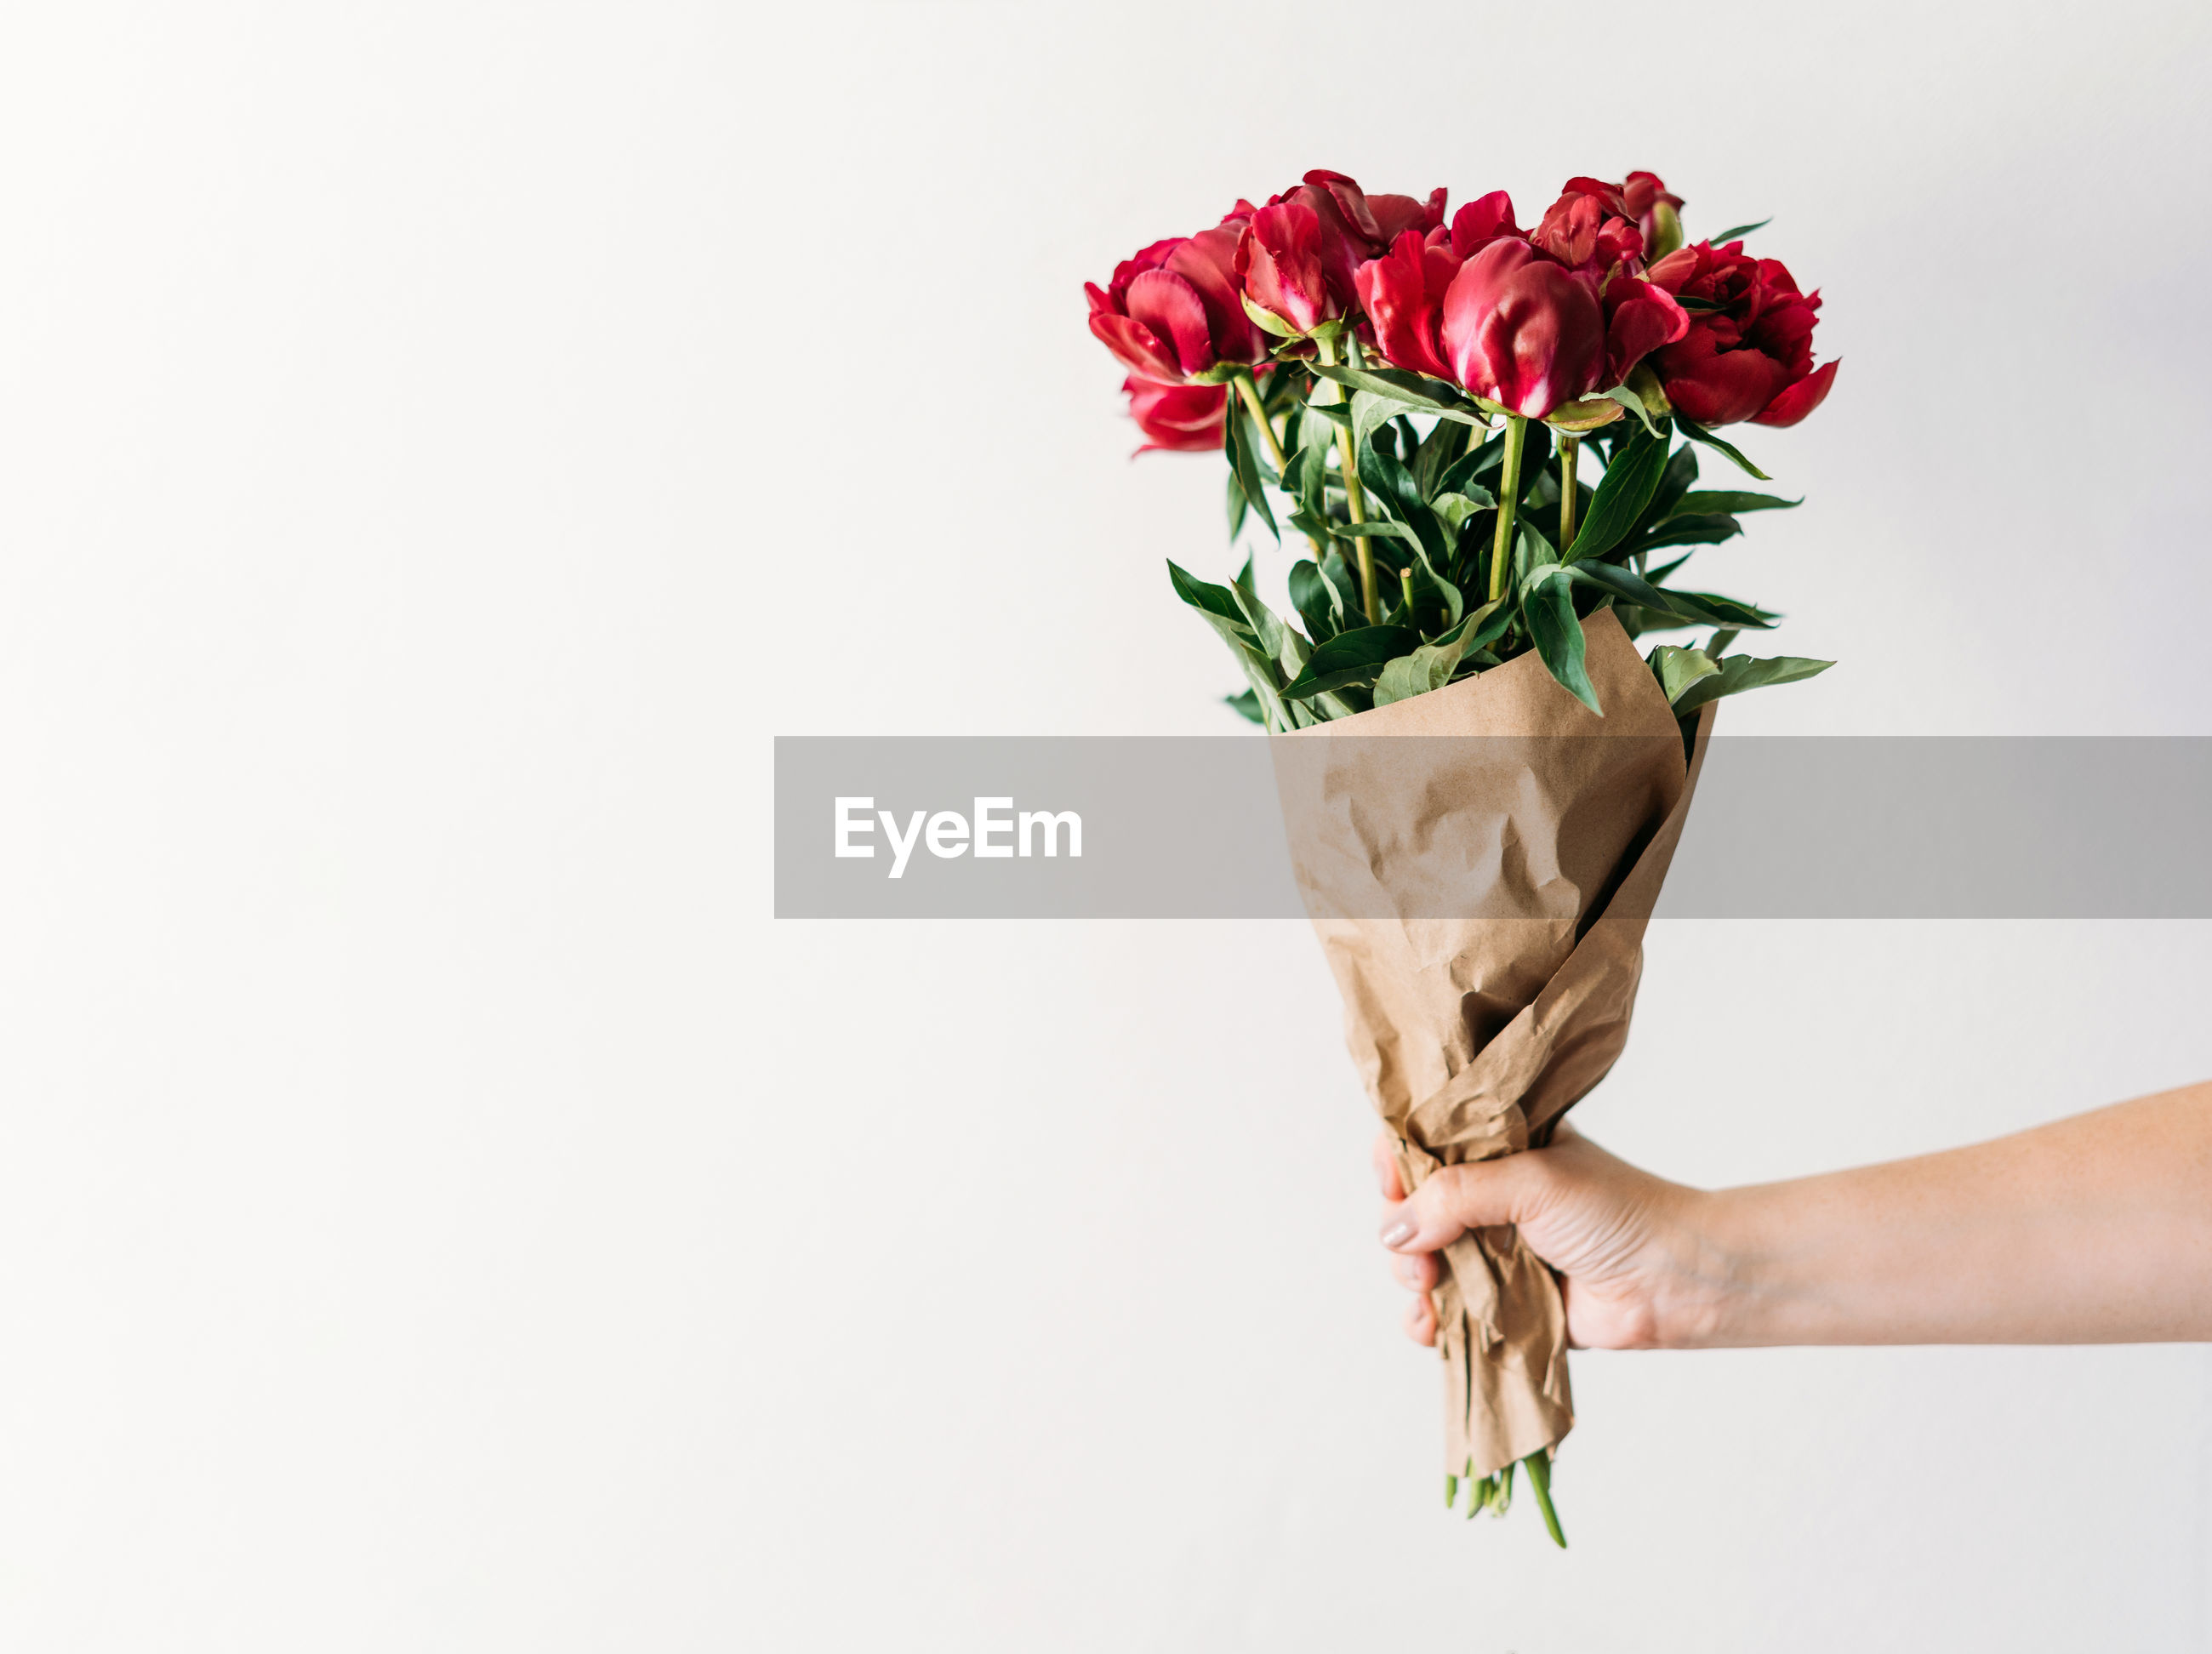 PERSON HOLDING ROSE AGAINST WHITE BACKGROUND